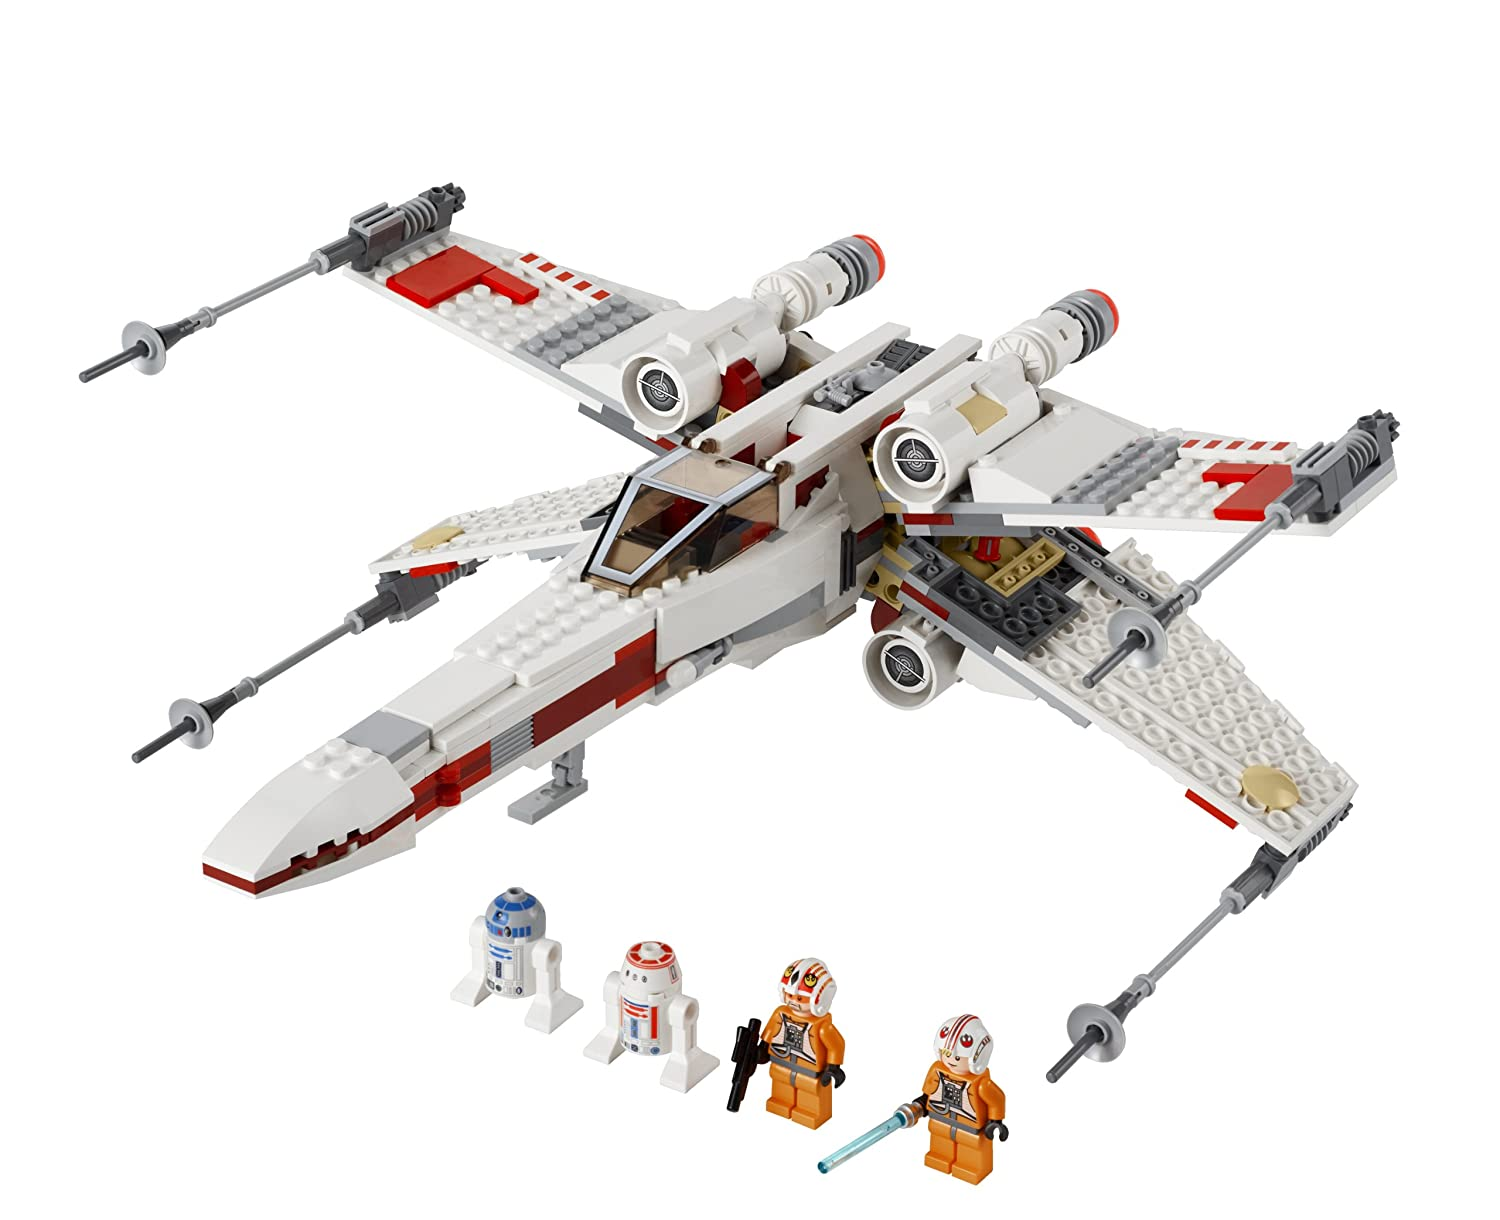 Uncategorized Luke Skywalker Ship amazon com lego star wars x wing starfighter 9493 discontinued by manufacturer toys games